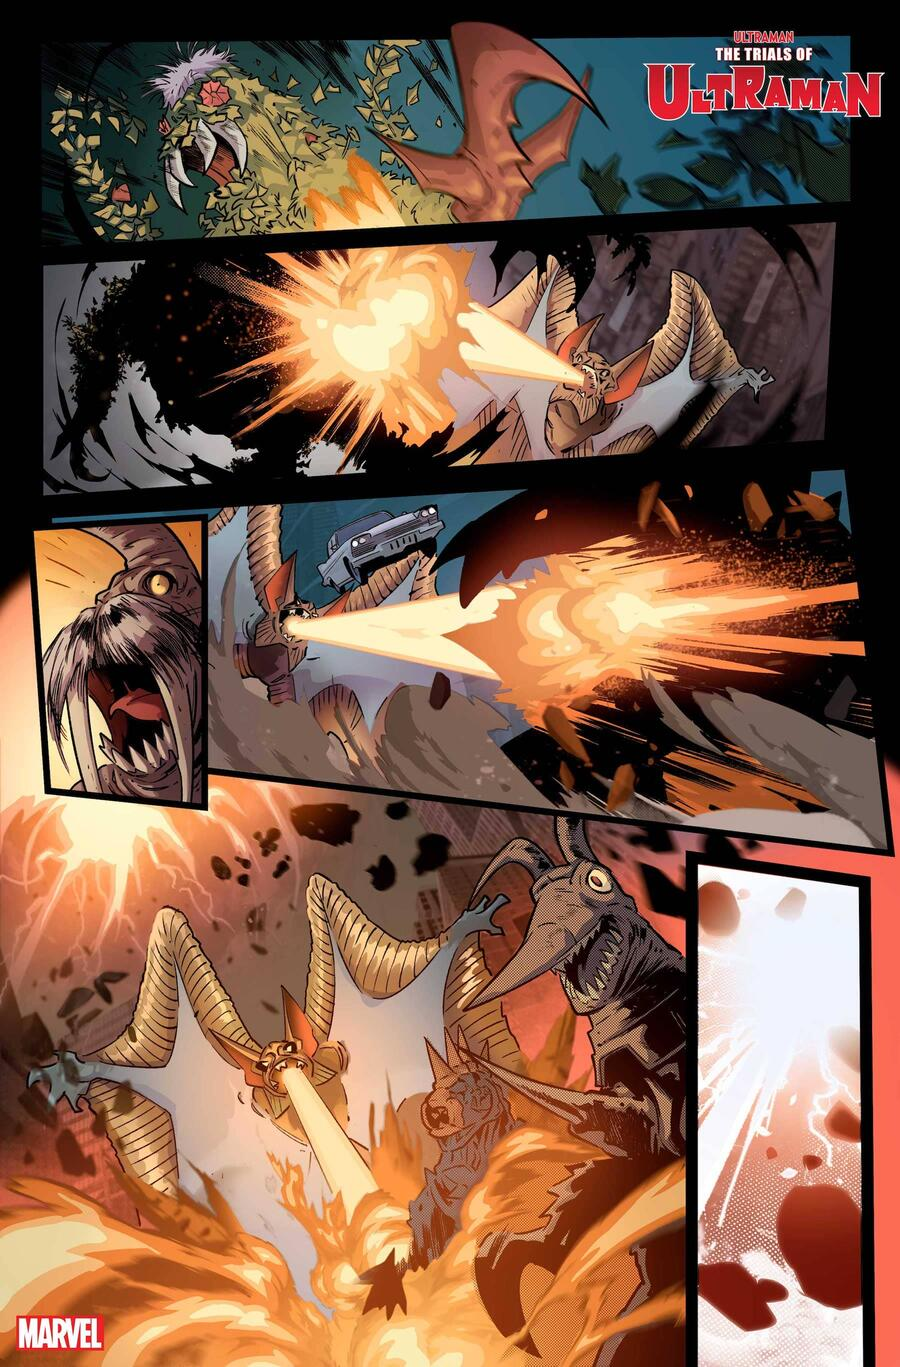 THE TRIALS OF ULTRAMAN #1 preview pages by Francesco Manna with colors by Espen Grundetjern